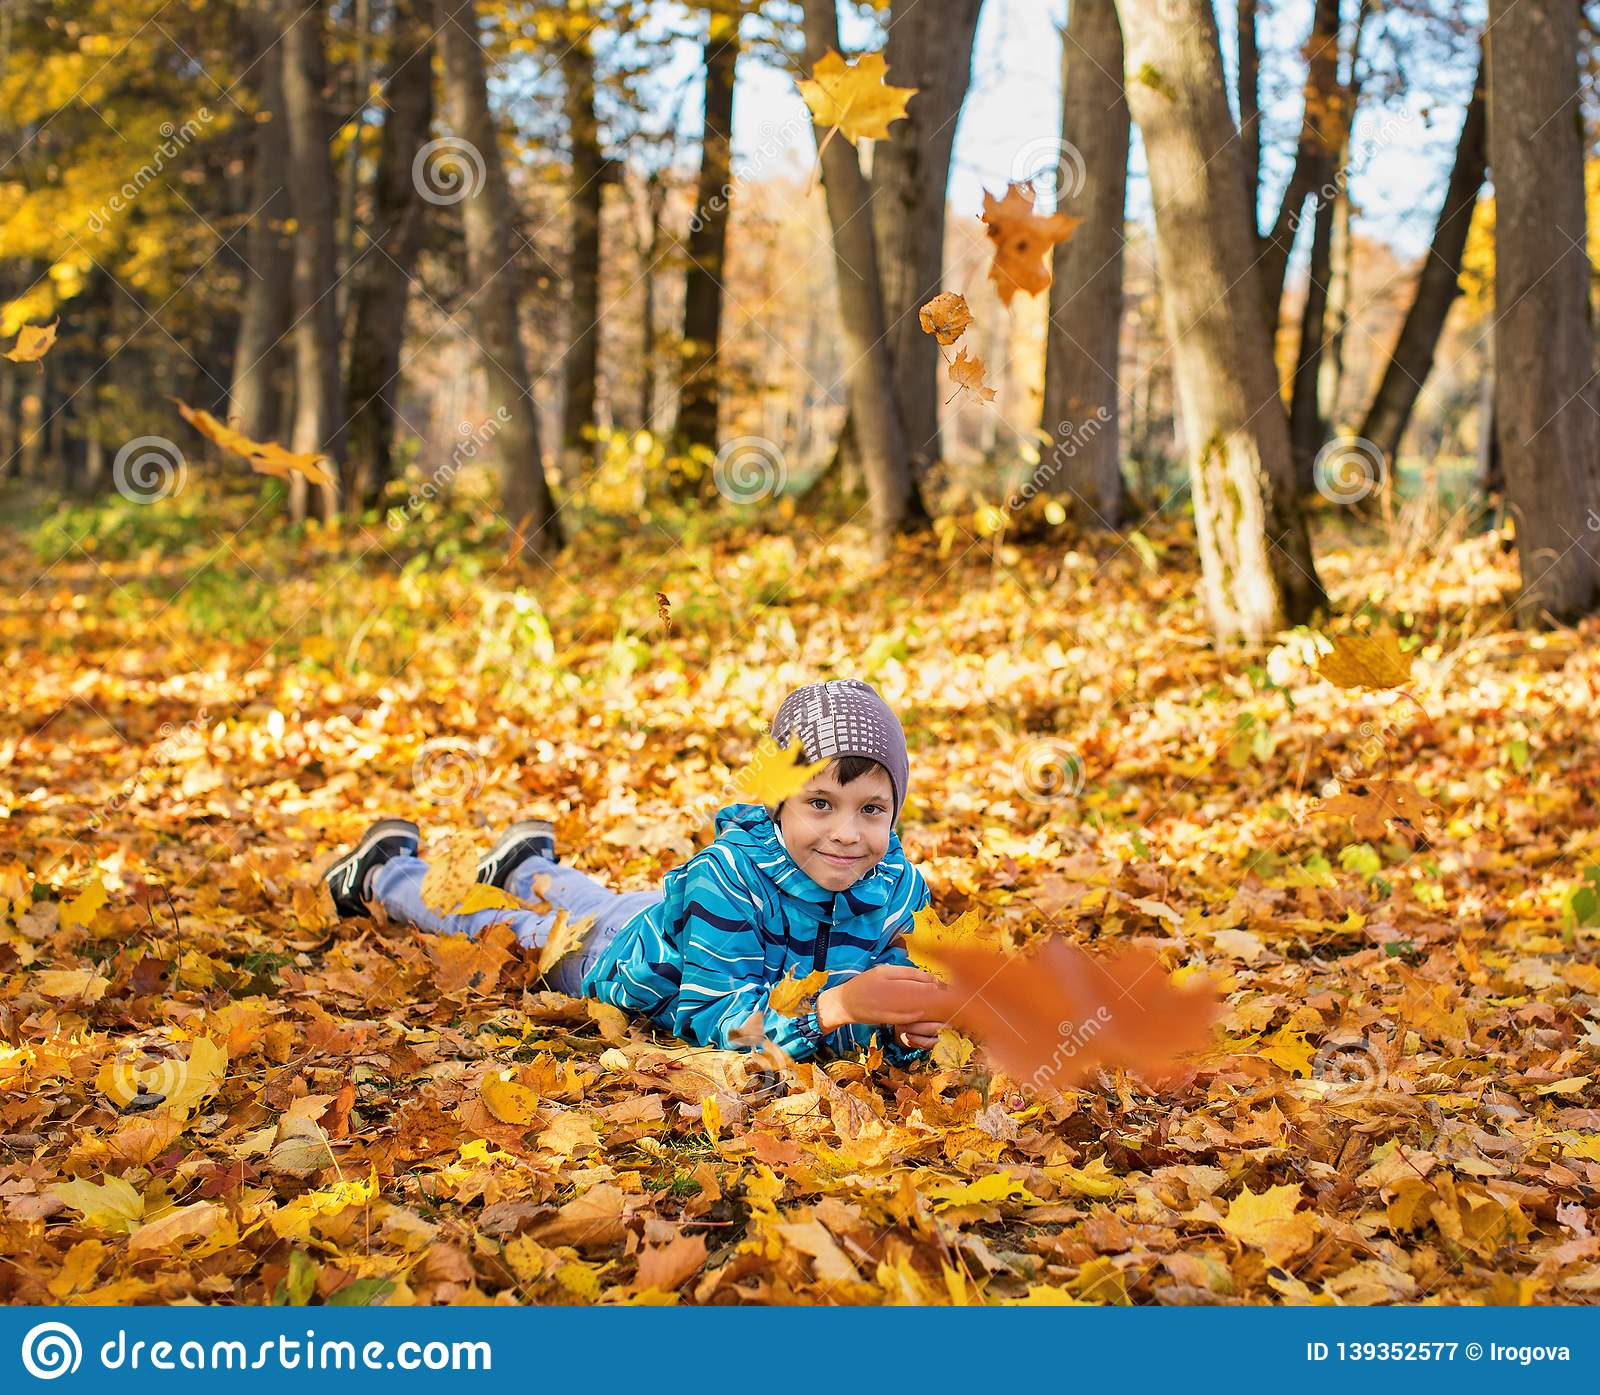 Child boy in autumn park with falling leaves.